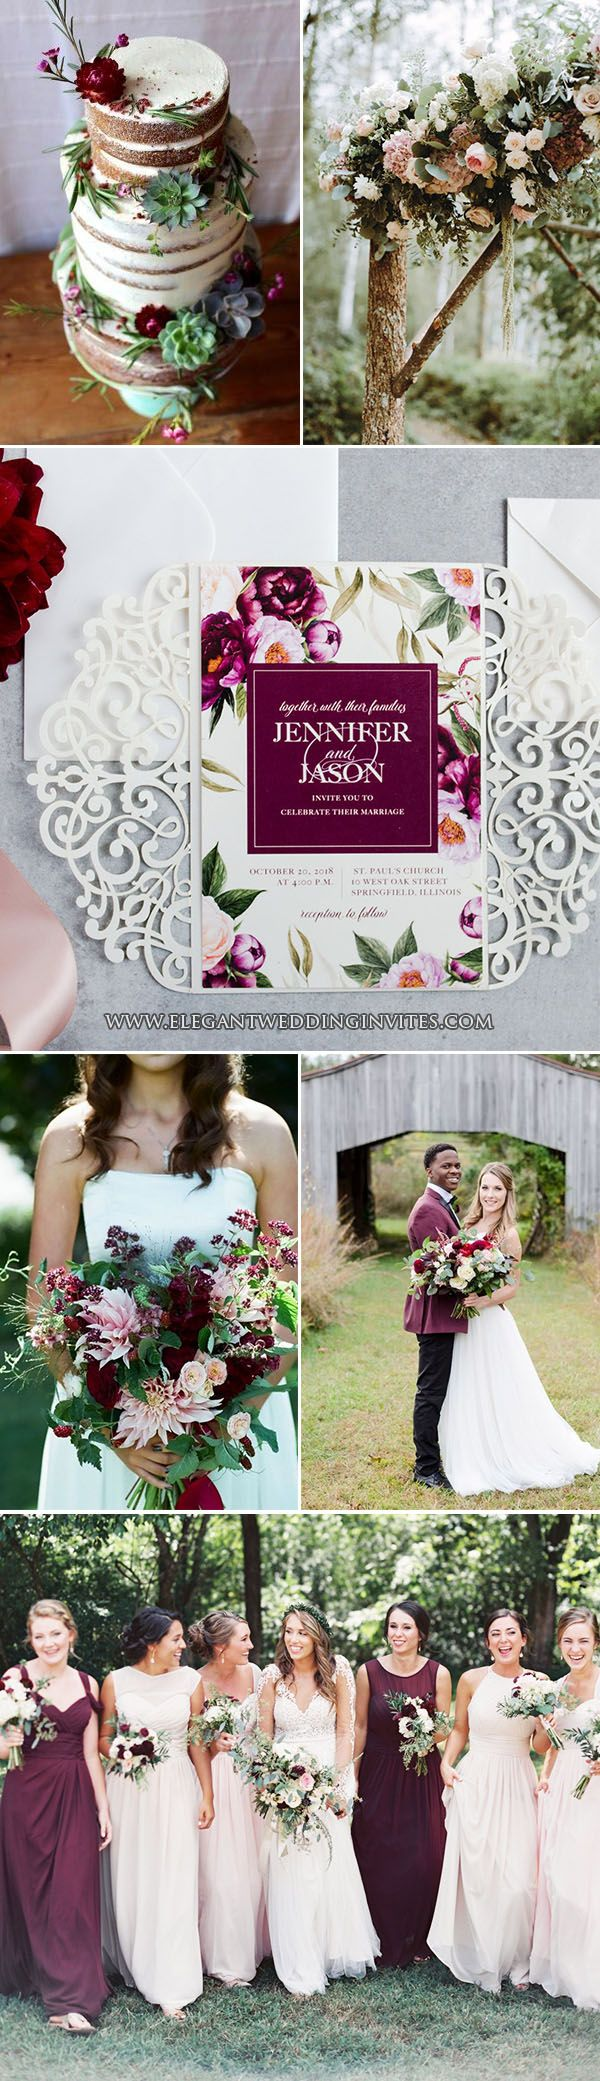 Wedding decorations theme october 2018  Chic Rustic Wedding Themes with Matching Invitations  Wedding